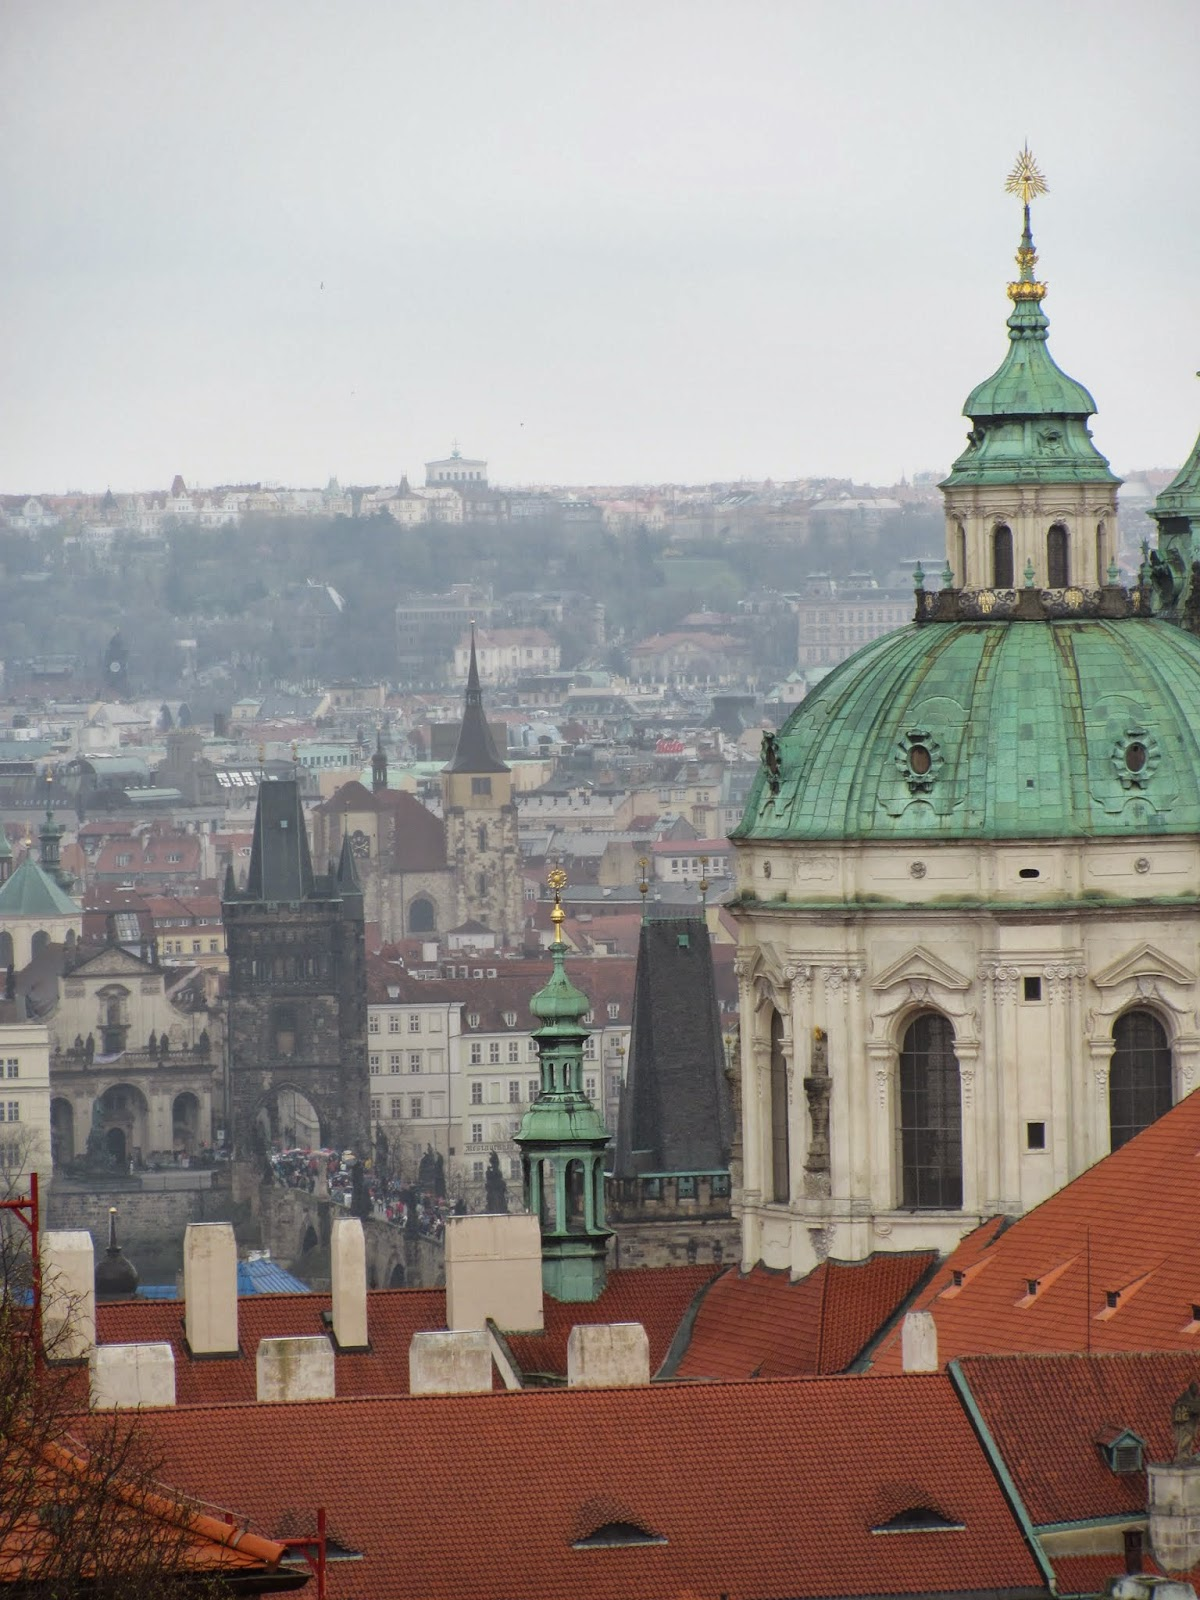 Charles Bridge and Red Roofs of Prague